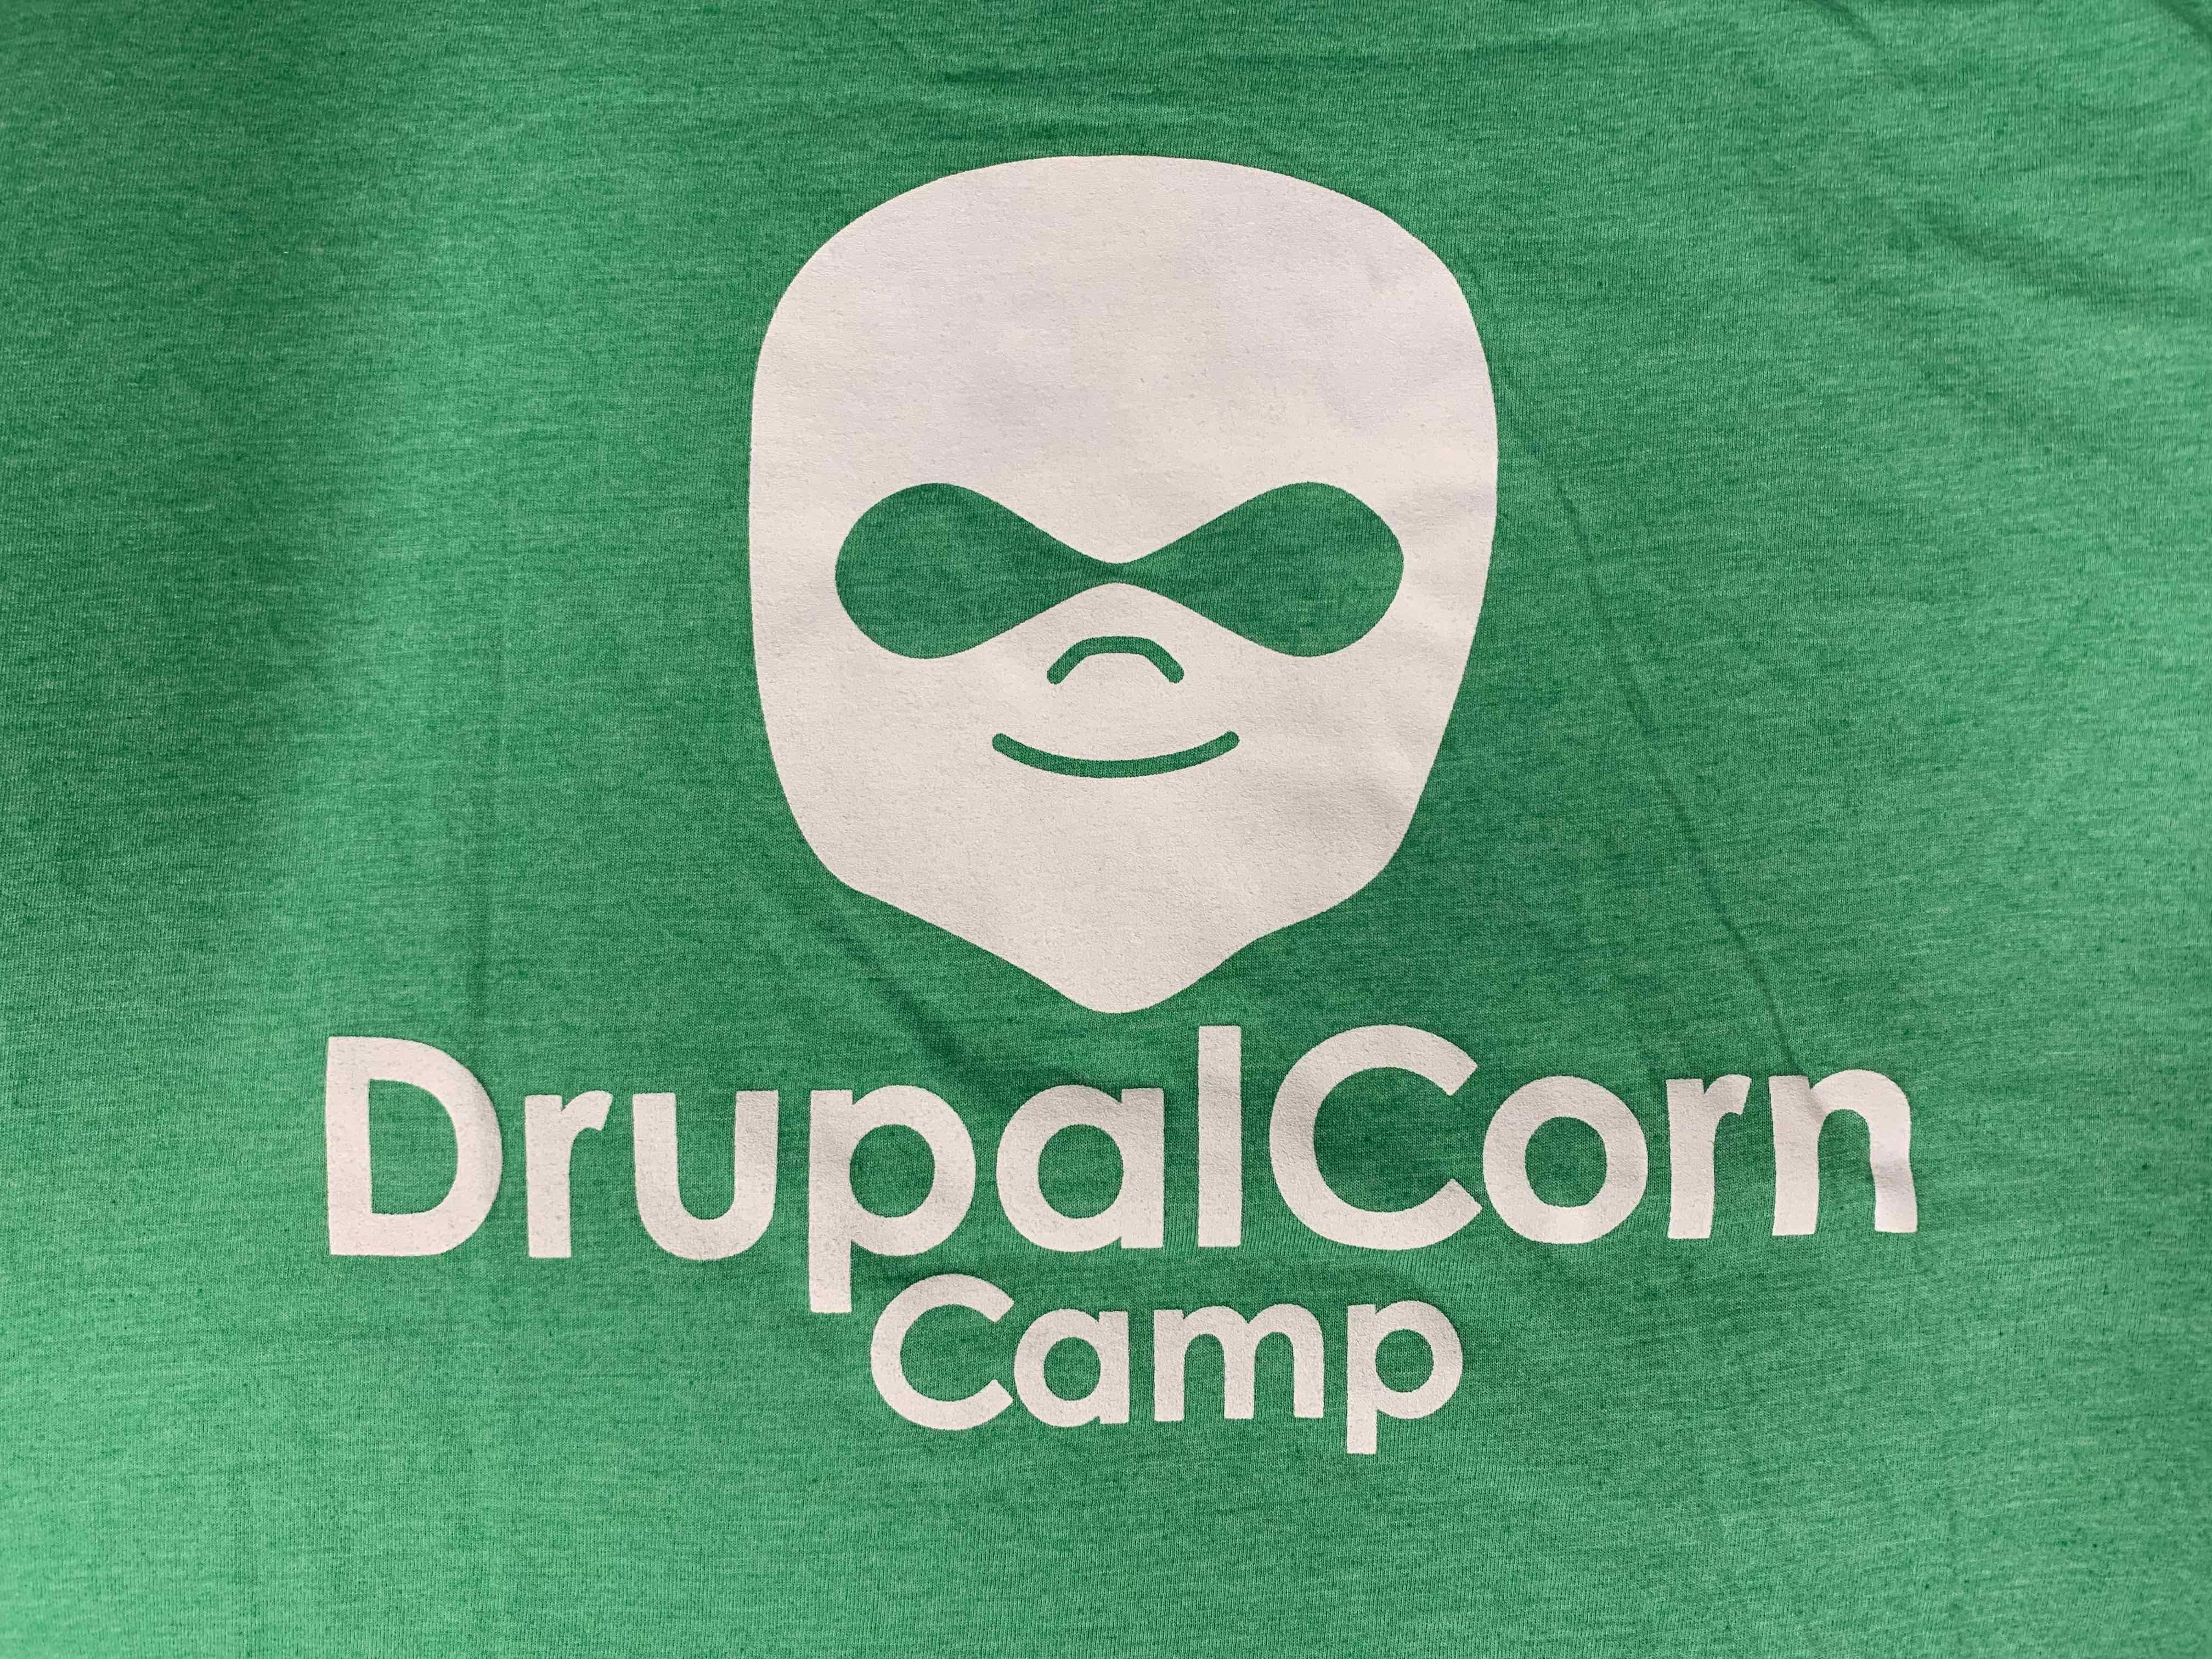 2016 DrupalCorn Shirt - Green with white lines.